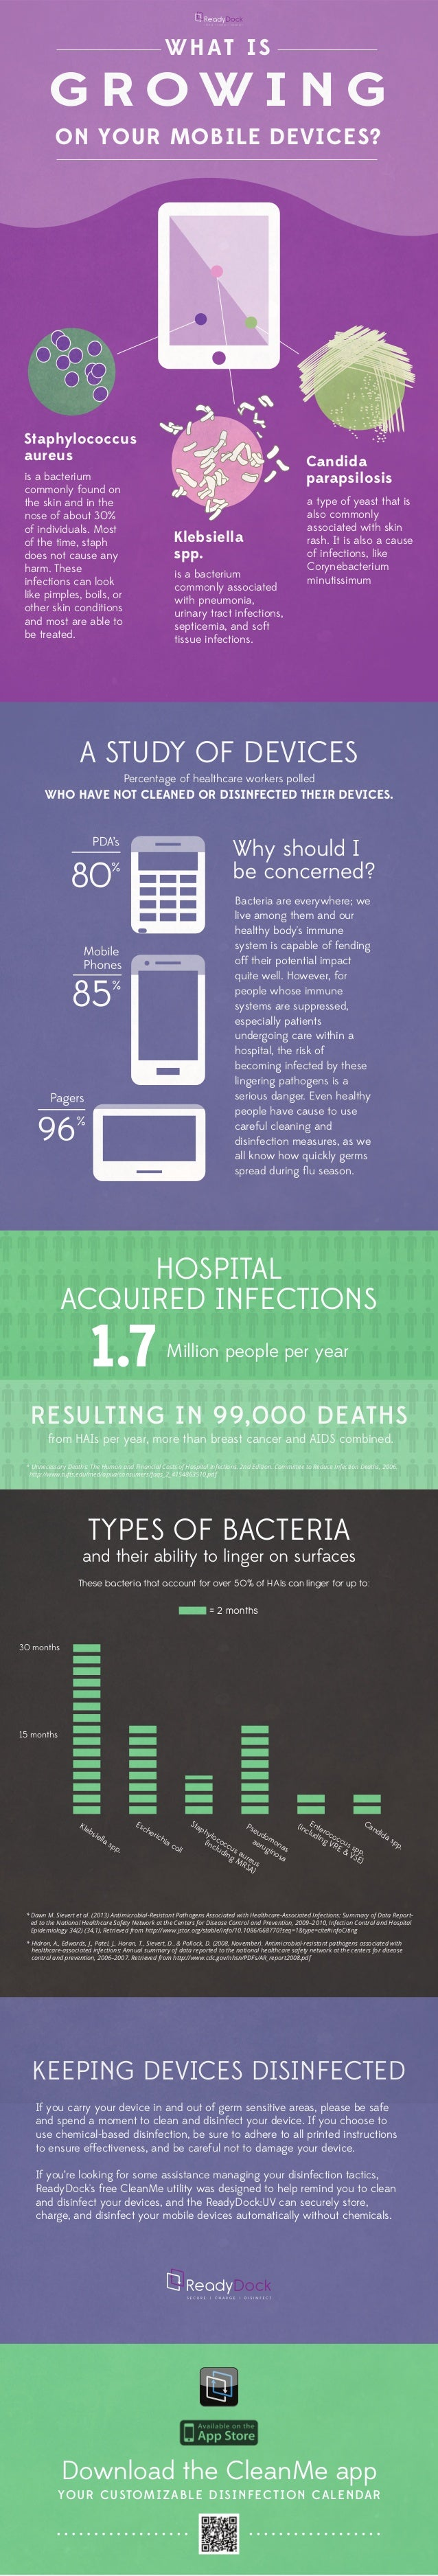 G R O W I N G A STUDY OF DEVICES TYPES OF BACTERIA Bacteria are everywhere; we live among them and our healthy body's immu...